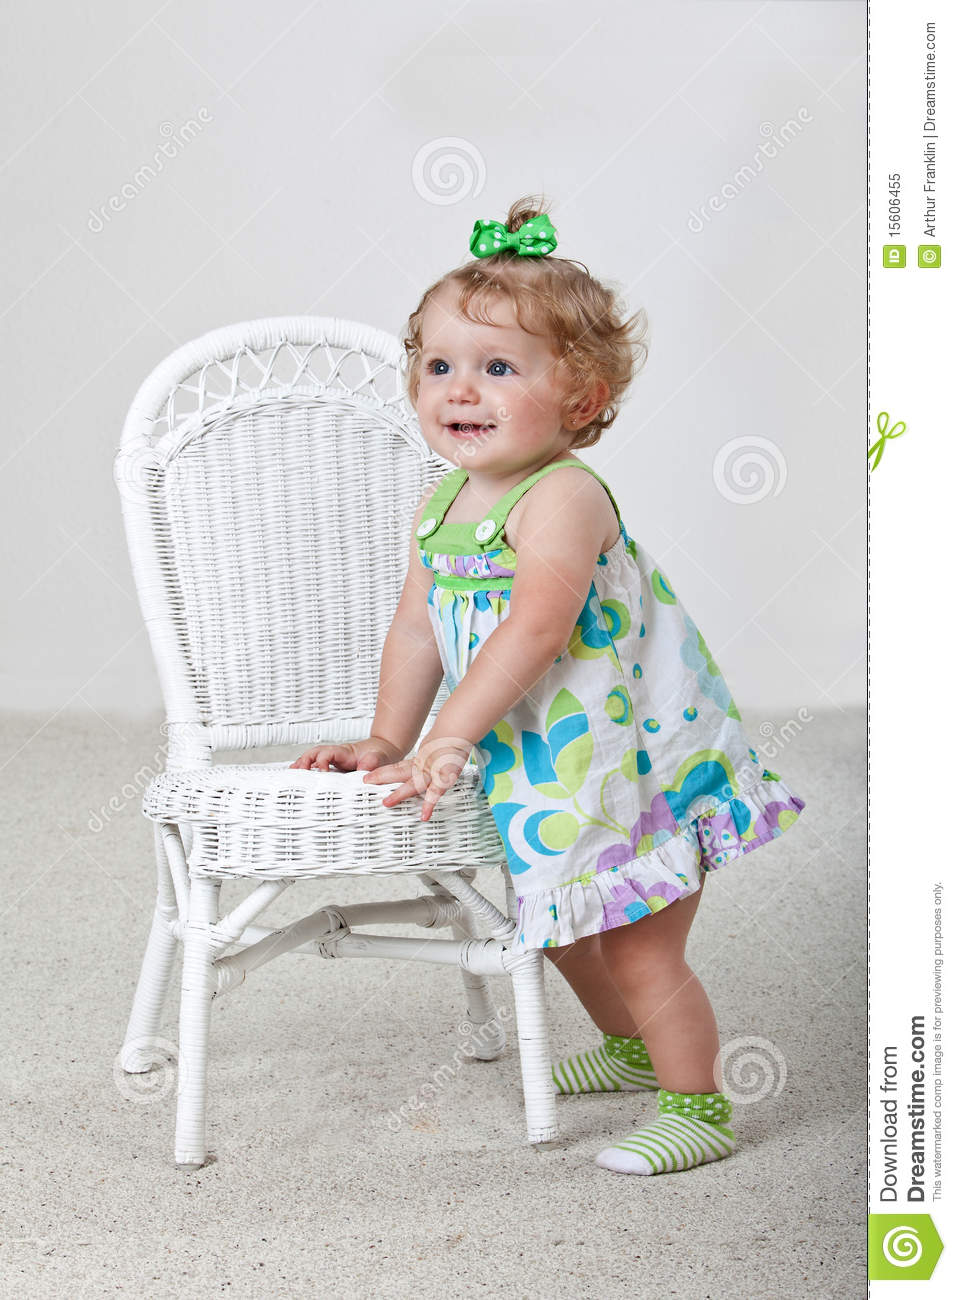 Old baby wearing pink and green standing next to a white wicker chair